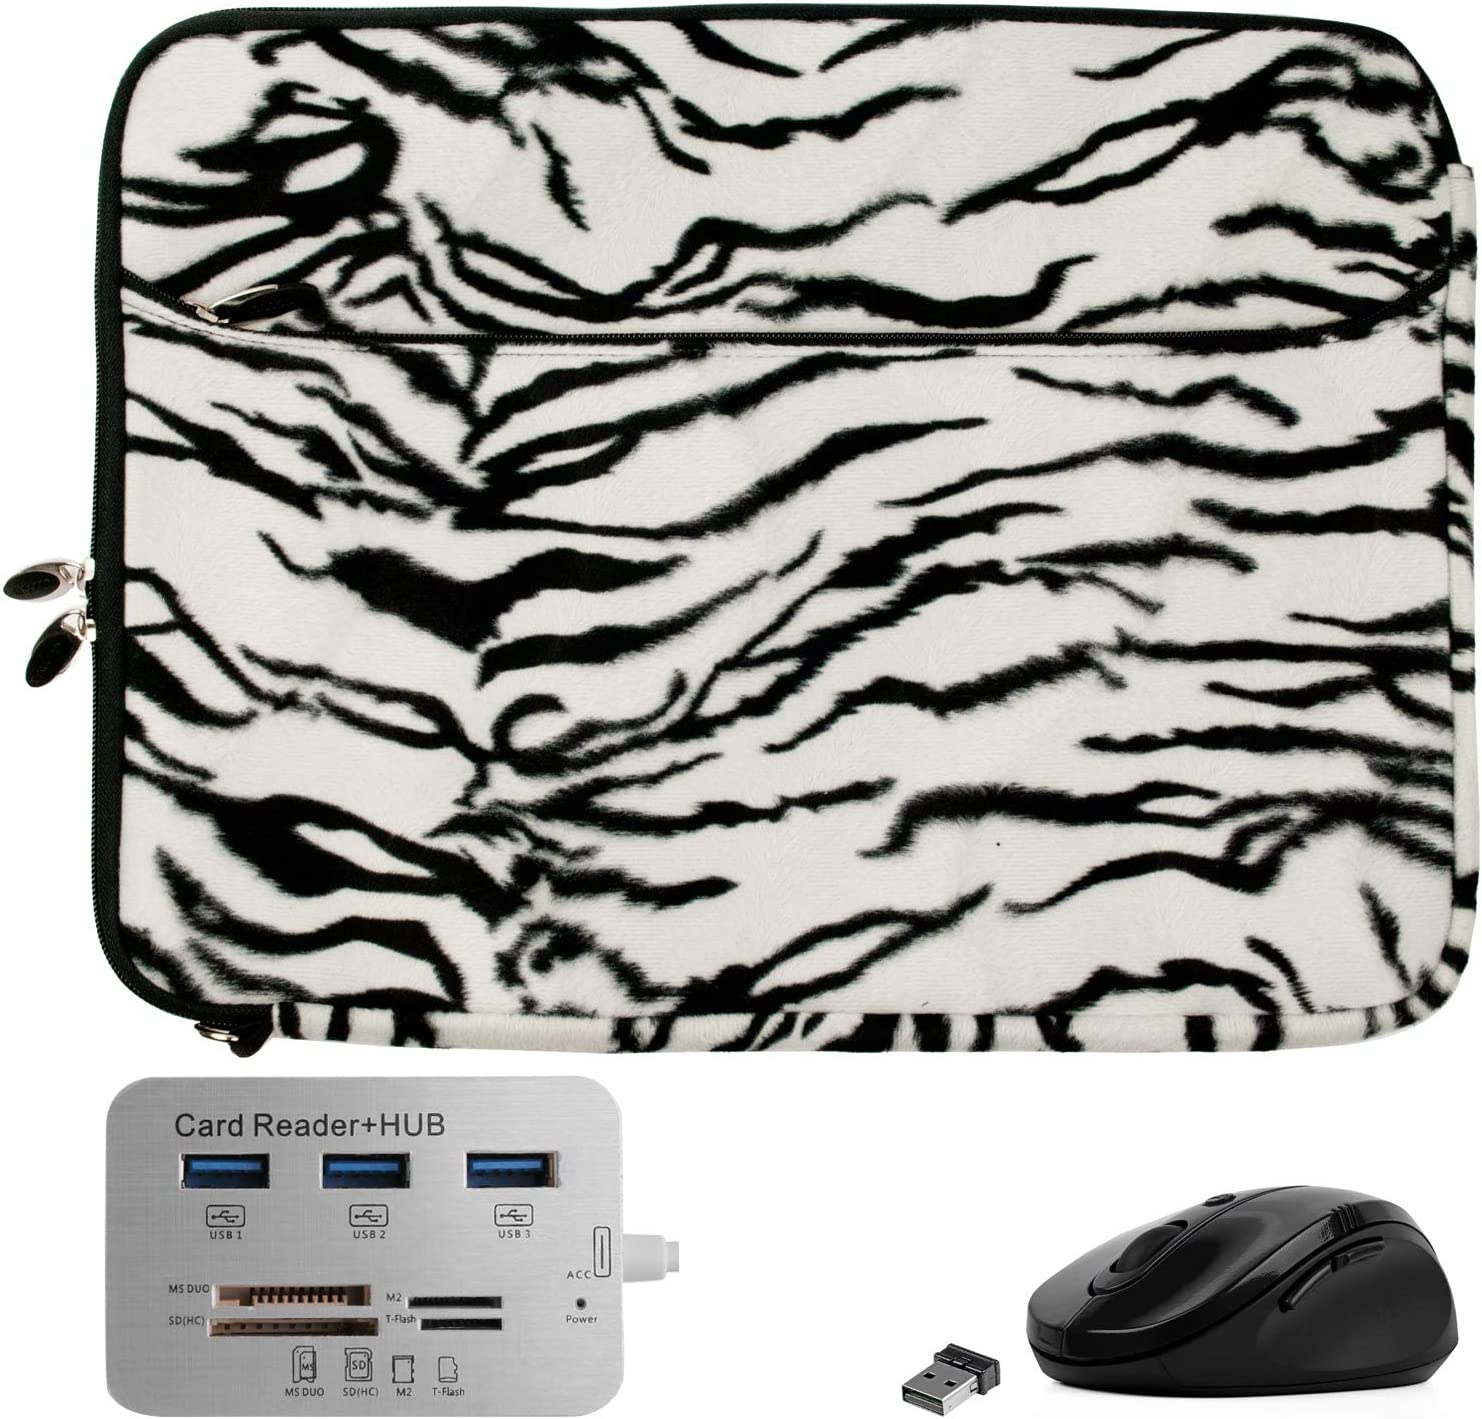 Fashion Faux Fur Zebra Laptop Sleeve 15 15.6 inch for Apple MacBook Pro 15 inch (Includes Mouse and USB C Hub)